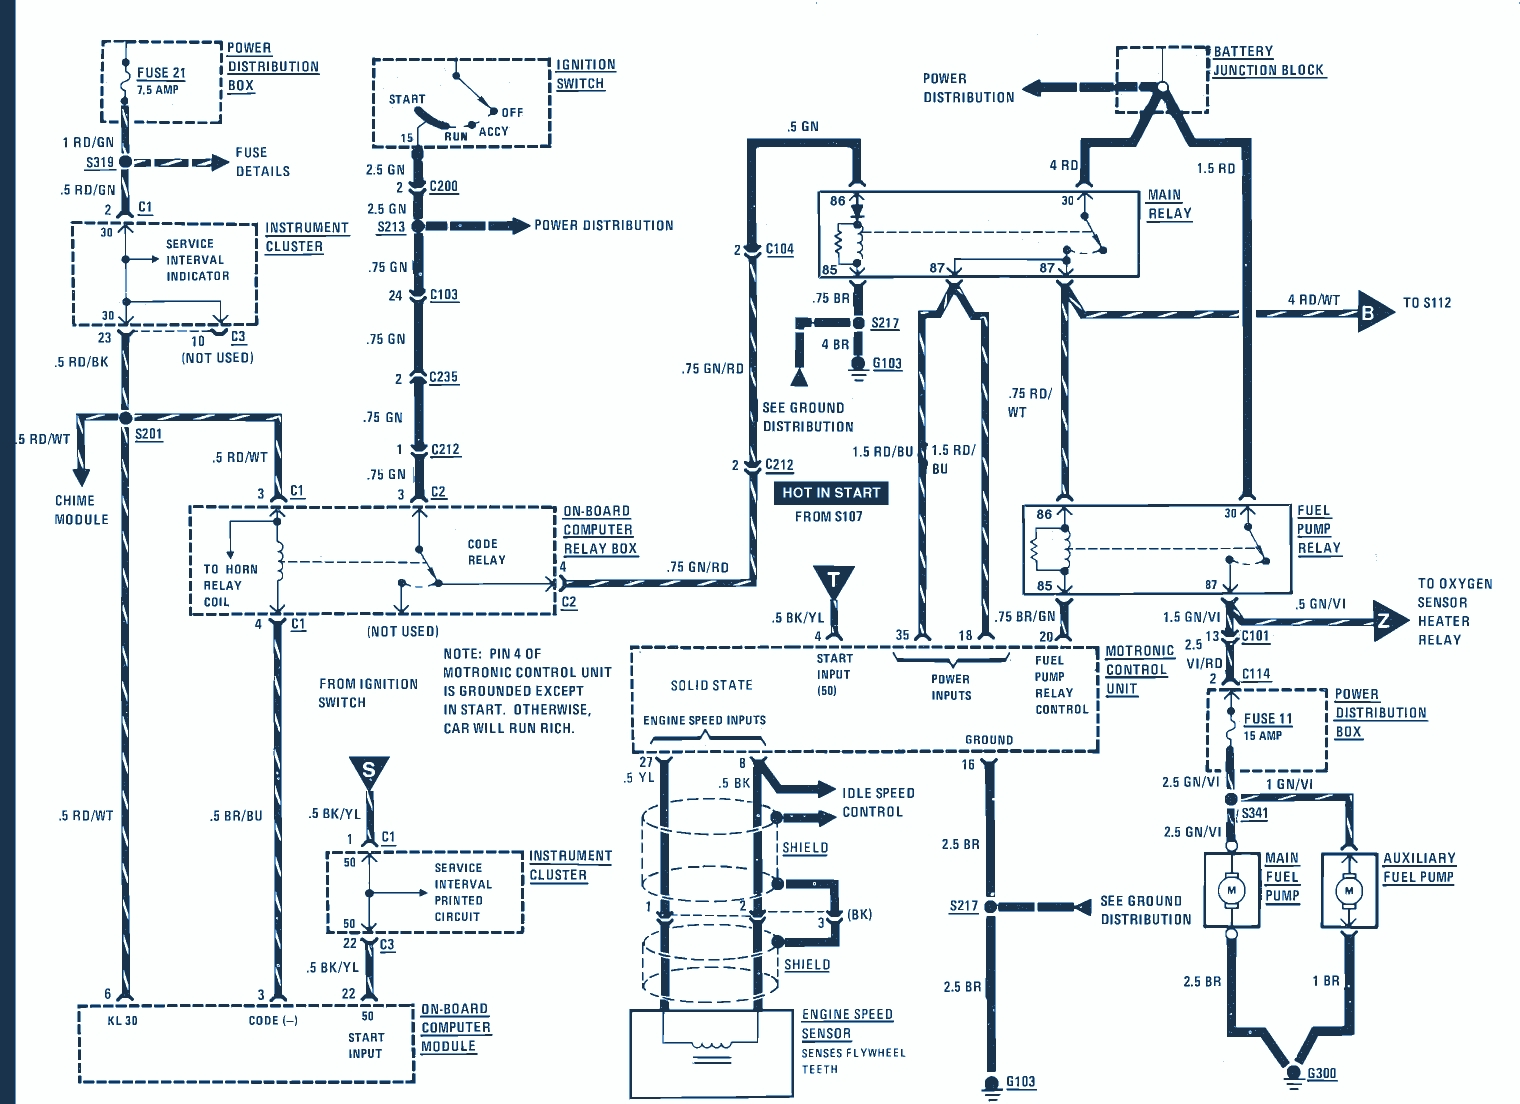 Lovely Bmw Z4 Wiring Diagram Images - Electrical and Wiring ...